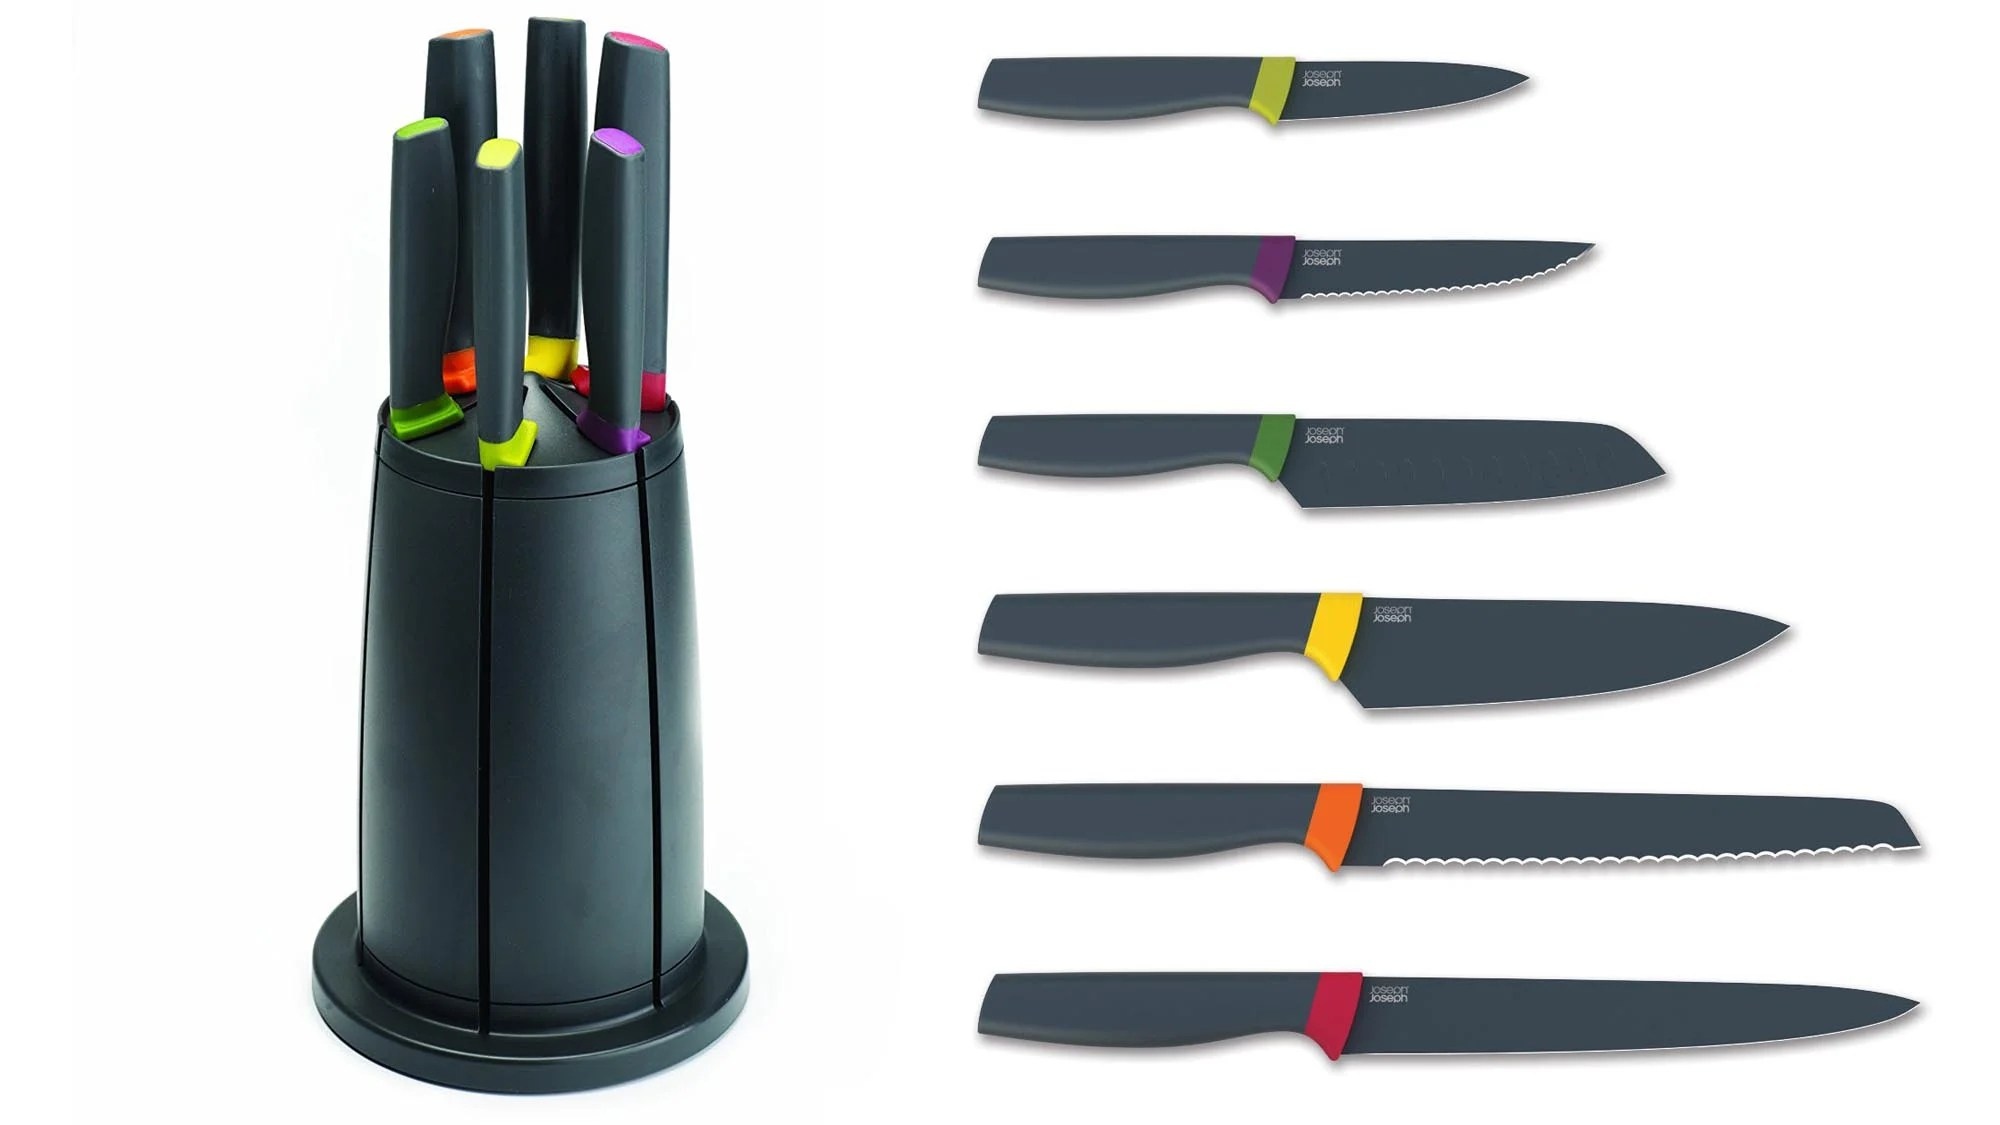 kitchen knives sets islands with chairs best stay sharp the deals on knife most have blades that inevitably touch surface or board when popped down between tasks sending clean freaks into an instant